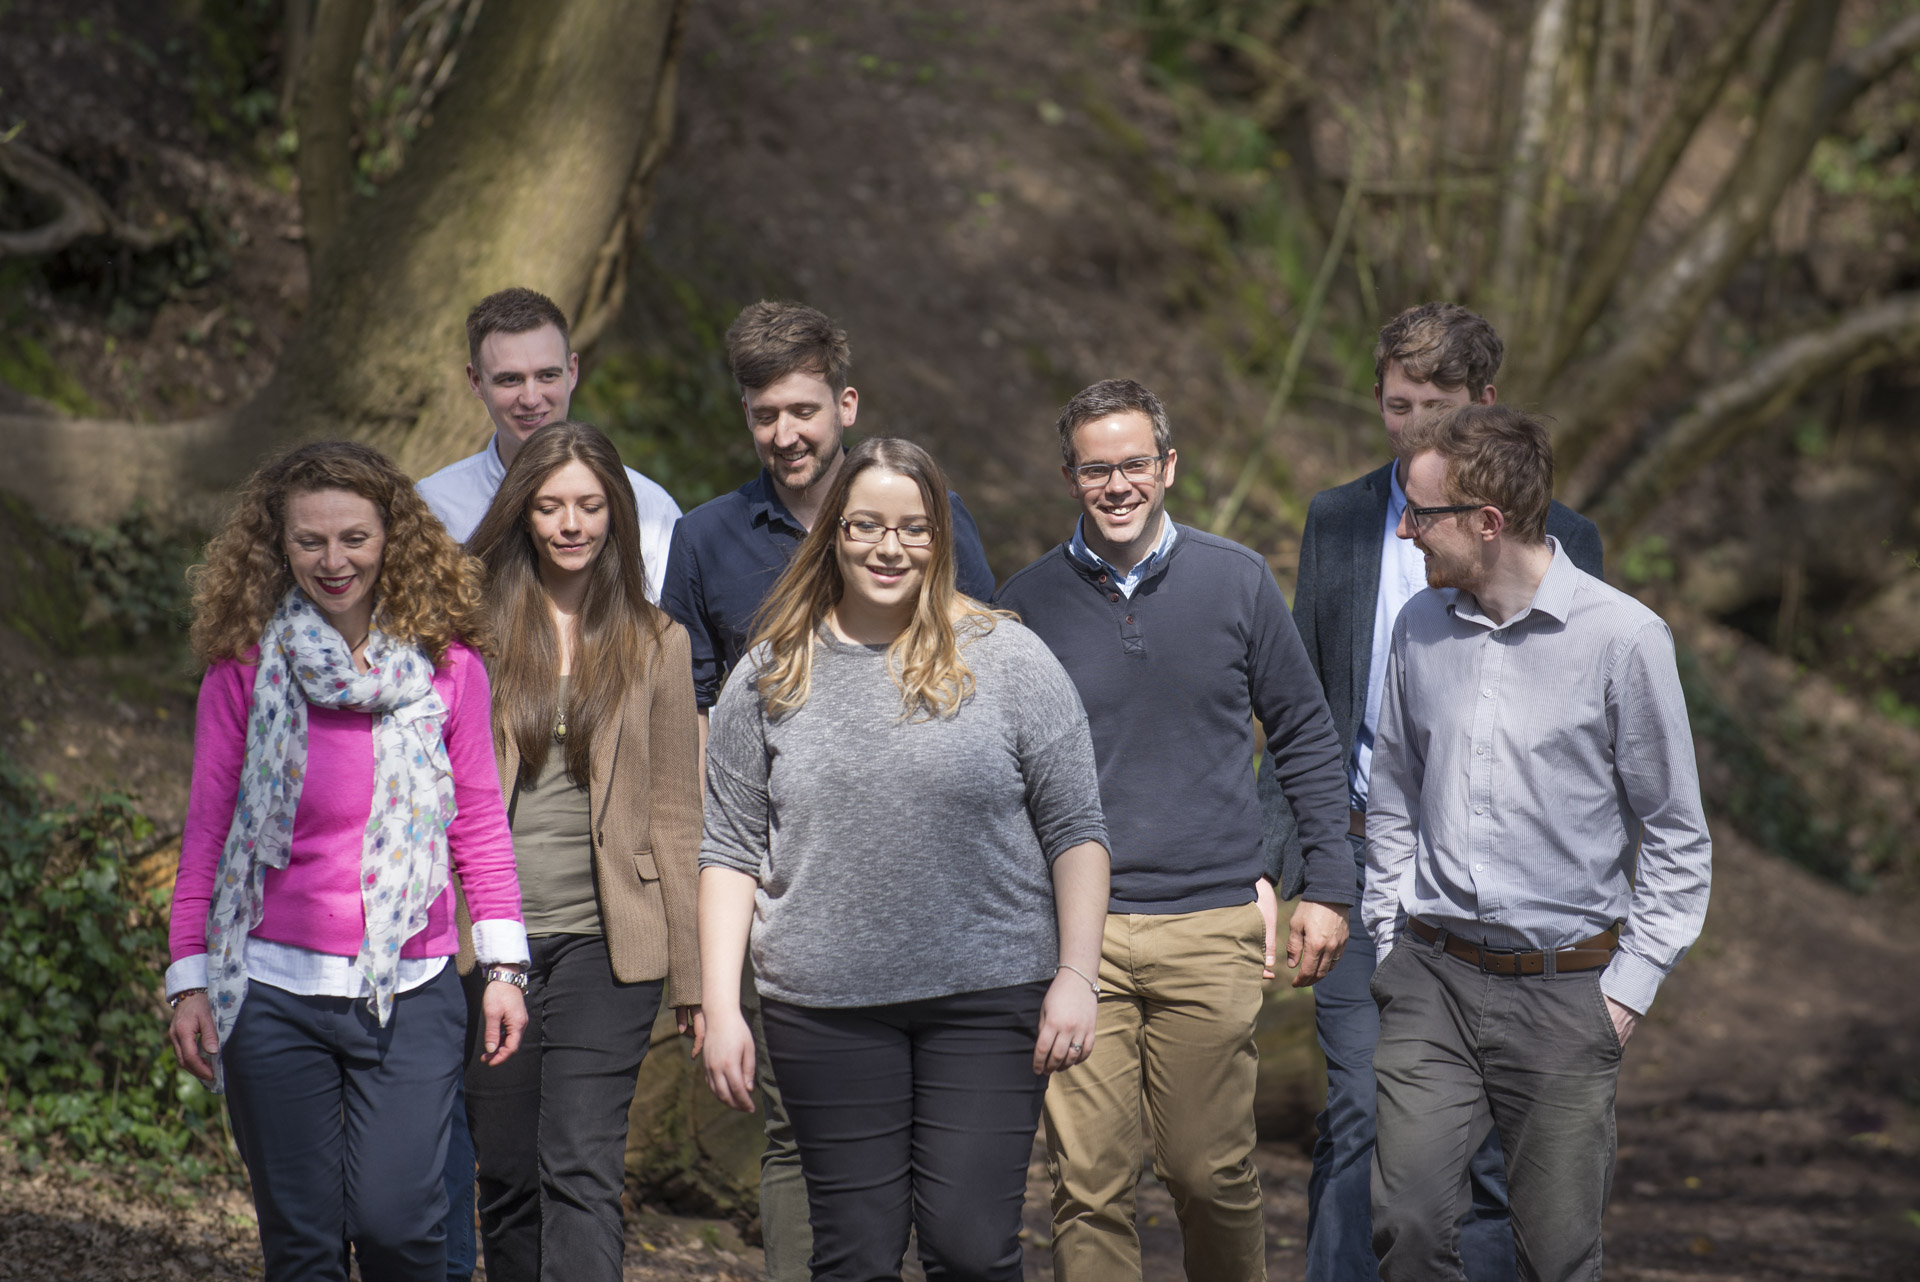 The Wharton team walking through a local nature reserve in Alcester, Warwickshire.